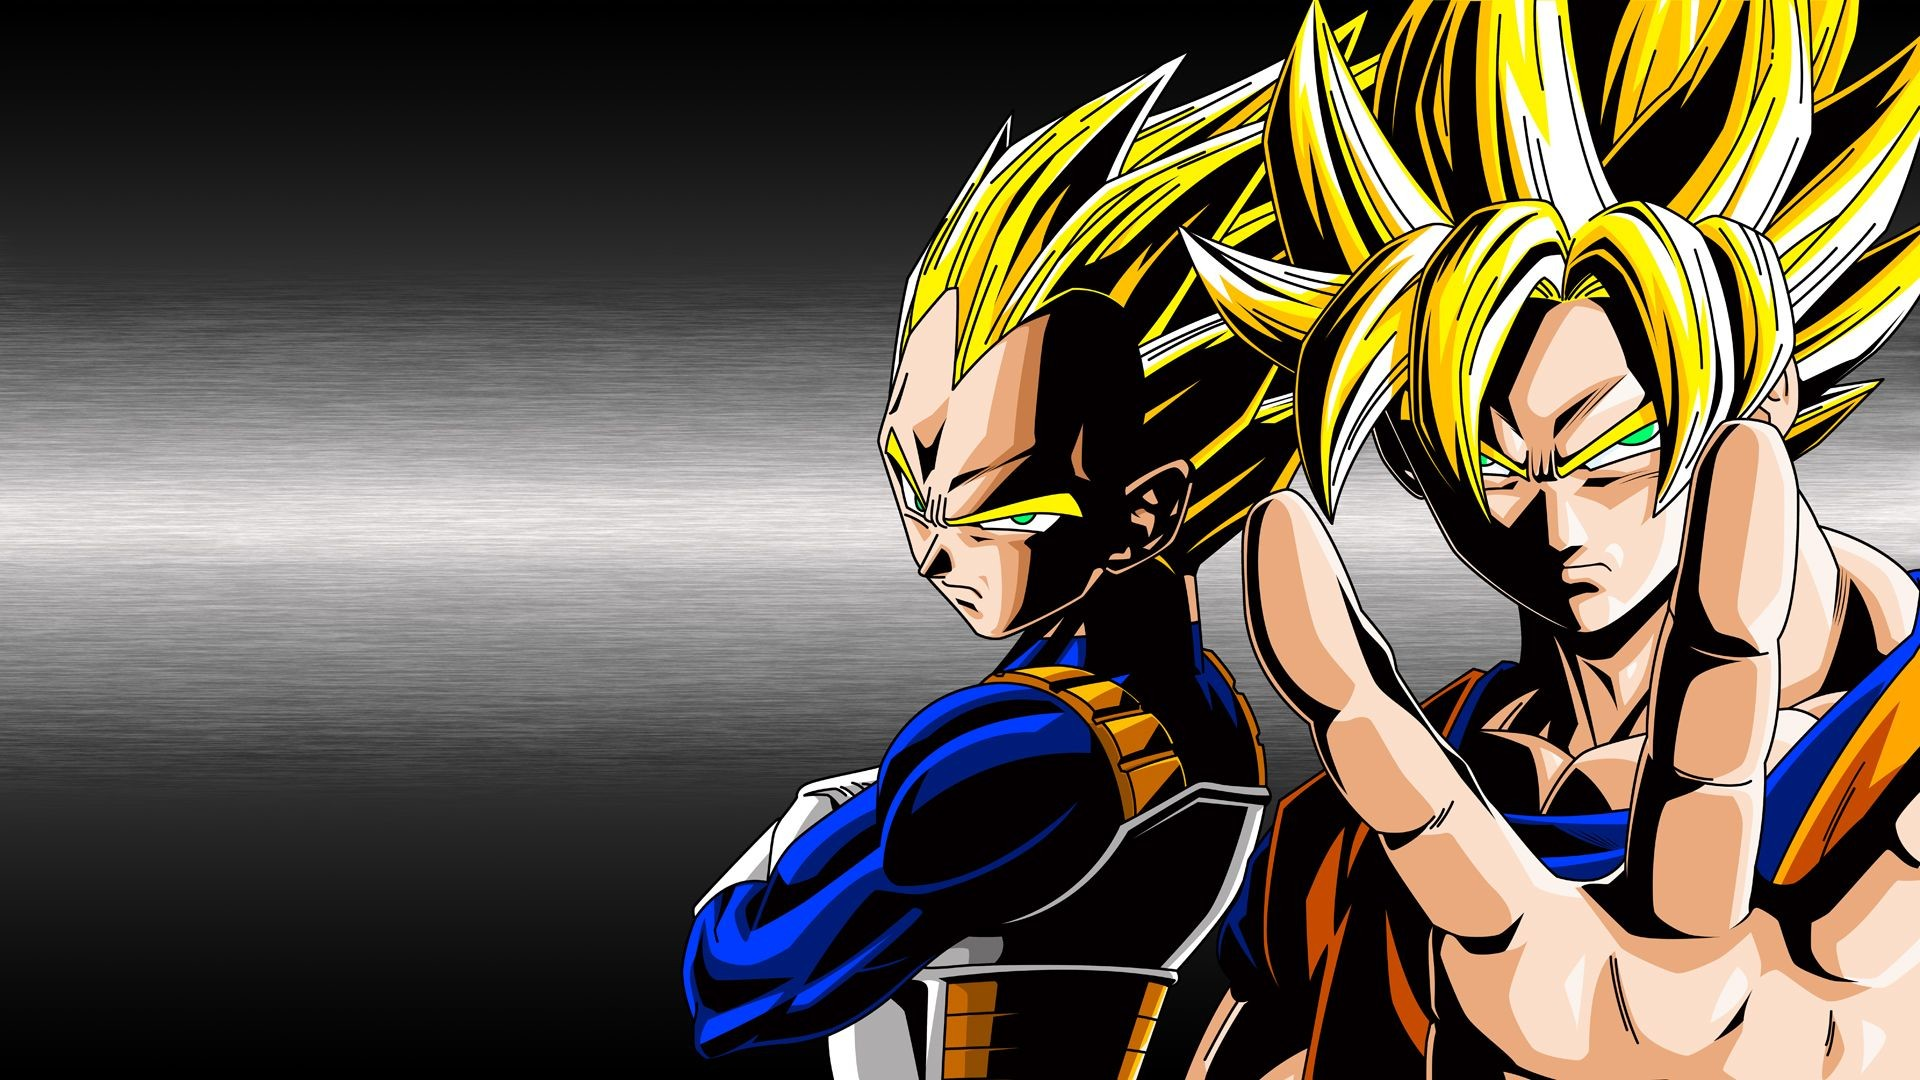 1920x1080 Vegeta HD Background, Picture, Image